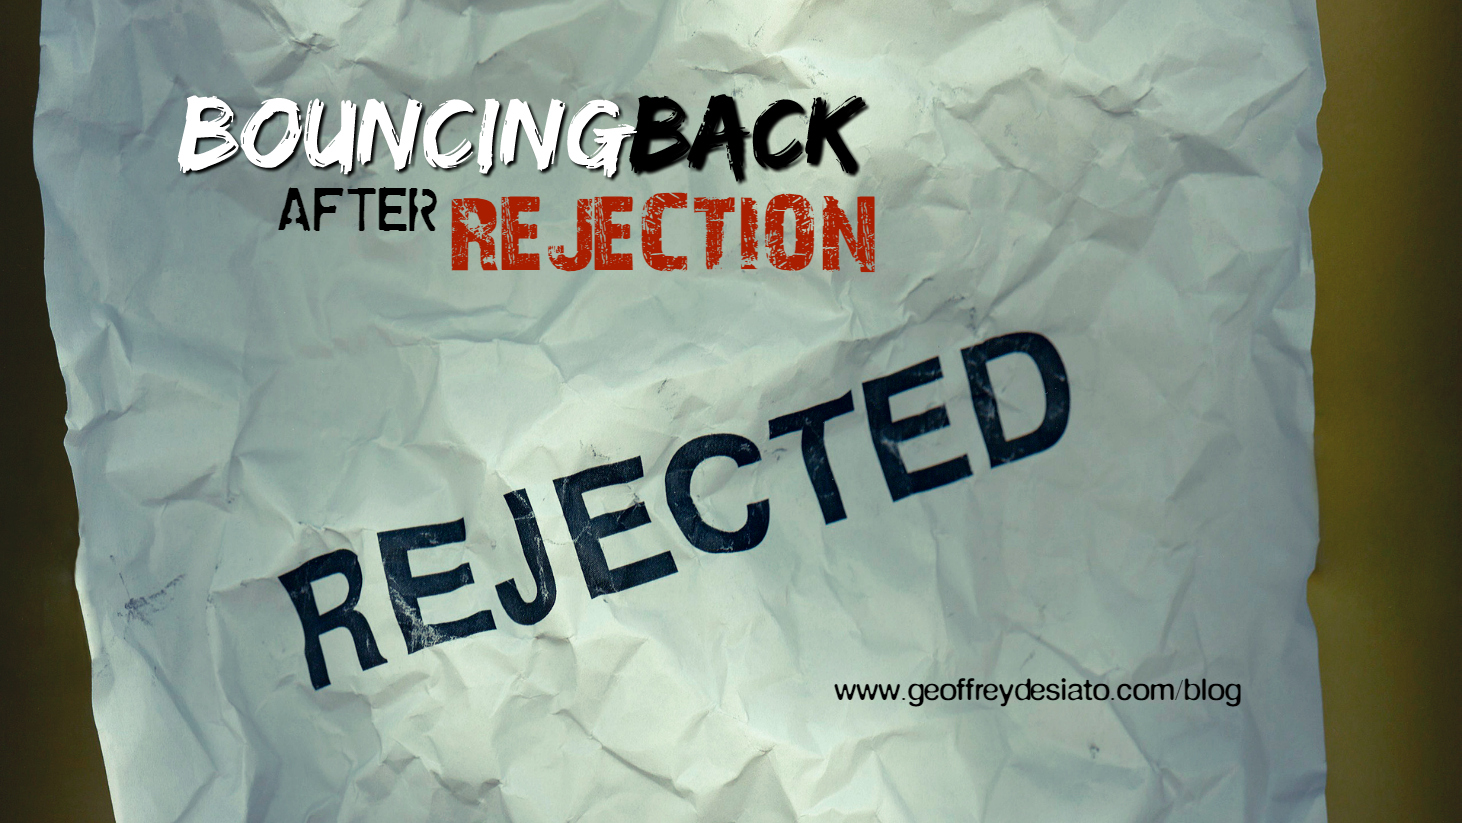 Bouncing Back After Rejection